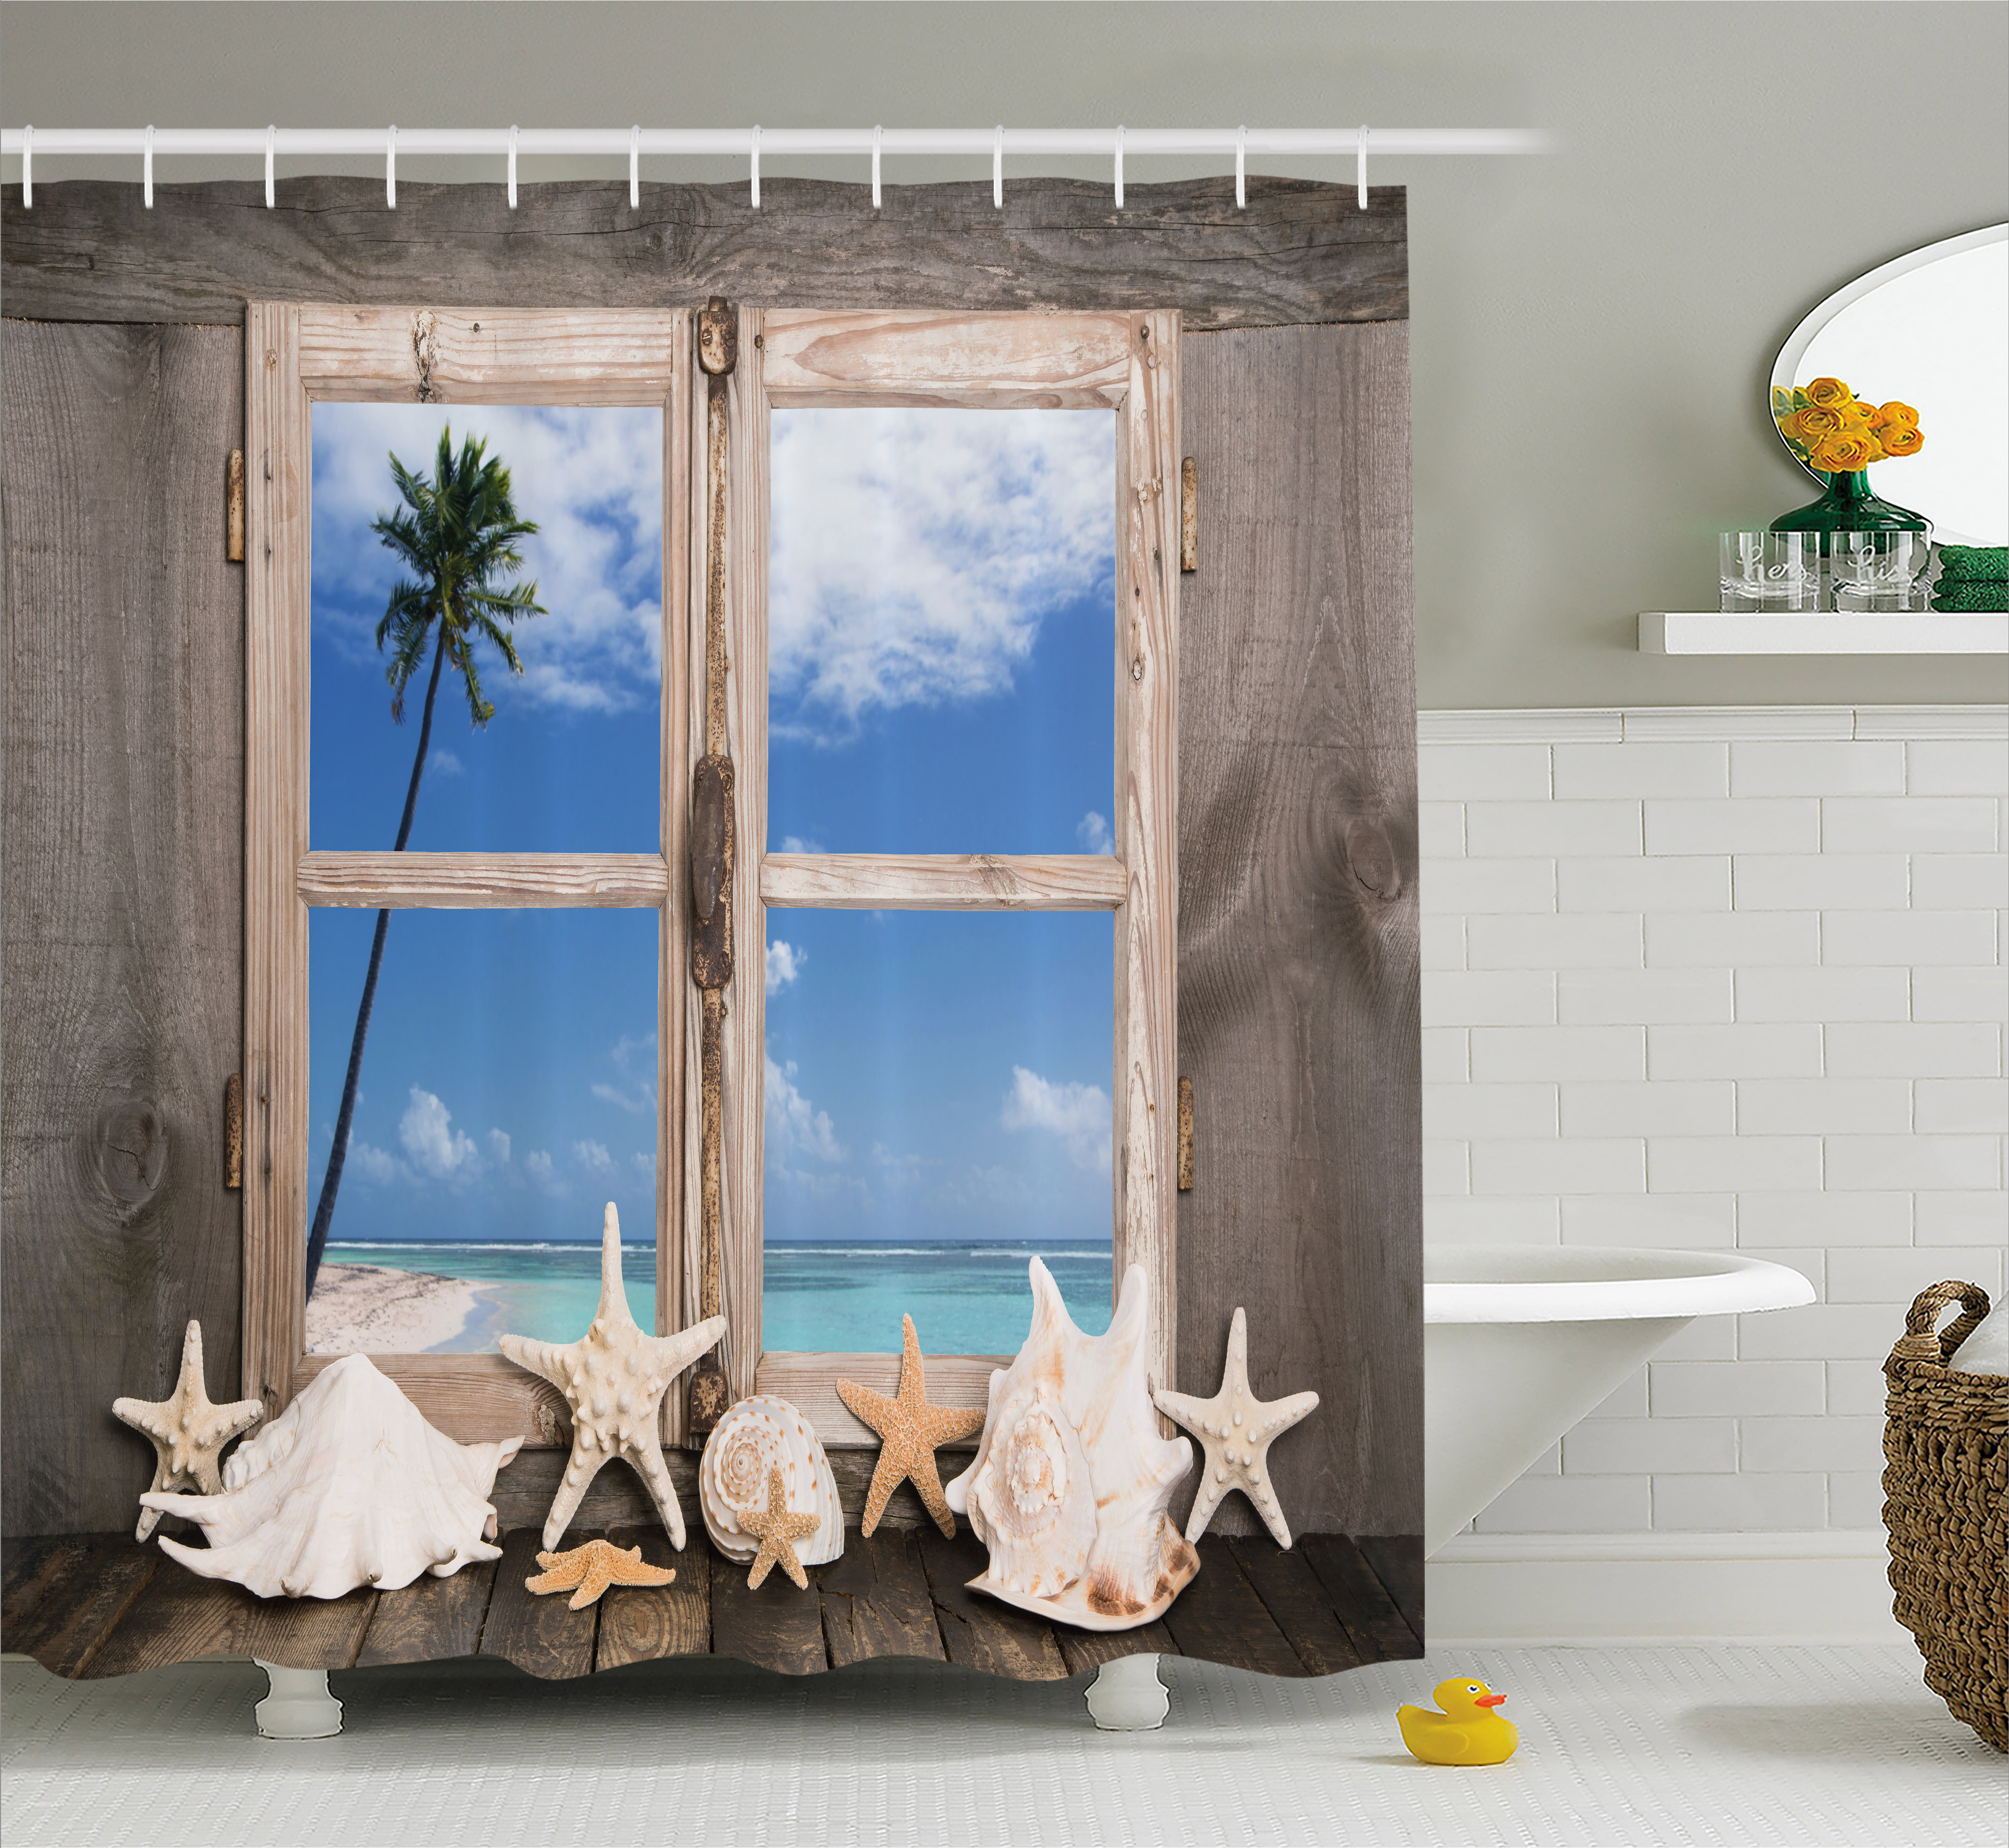 Beach Decor Shower Curtain, Summer Holiday wih Seashells Starfish Palm Tree Ocean Print, Fabric Bathroom Set with Hooks, 69W X 70L Inches, Light Brown Sky Blue and White, by Ambesonne